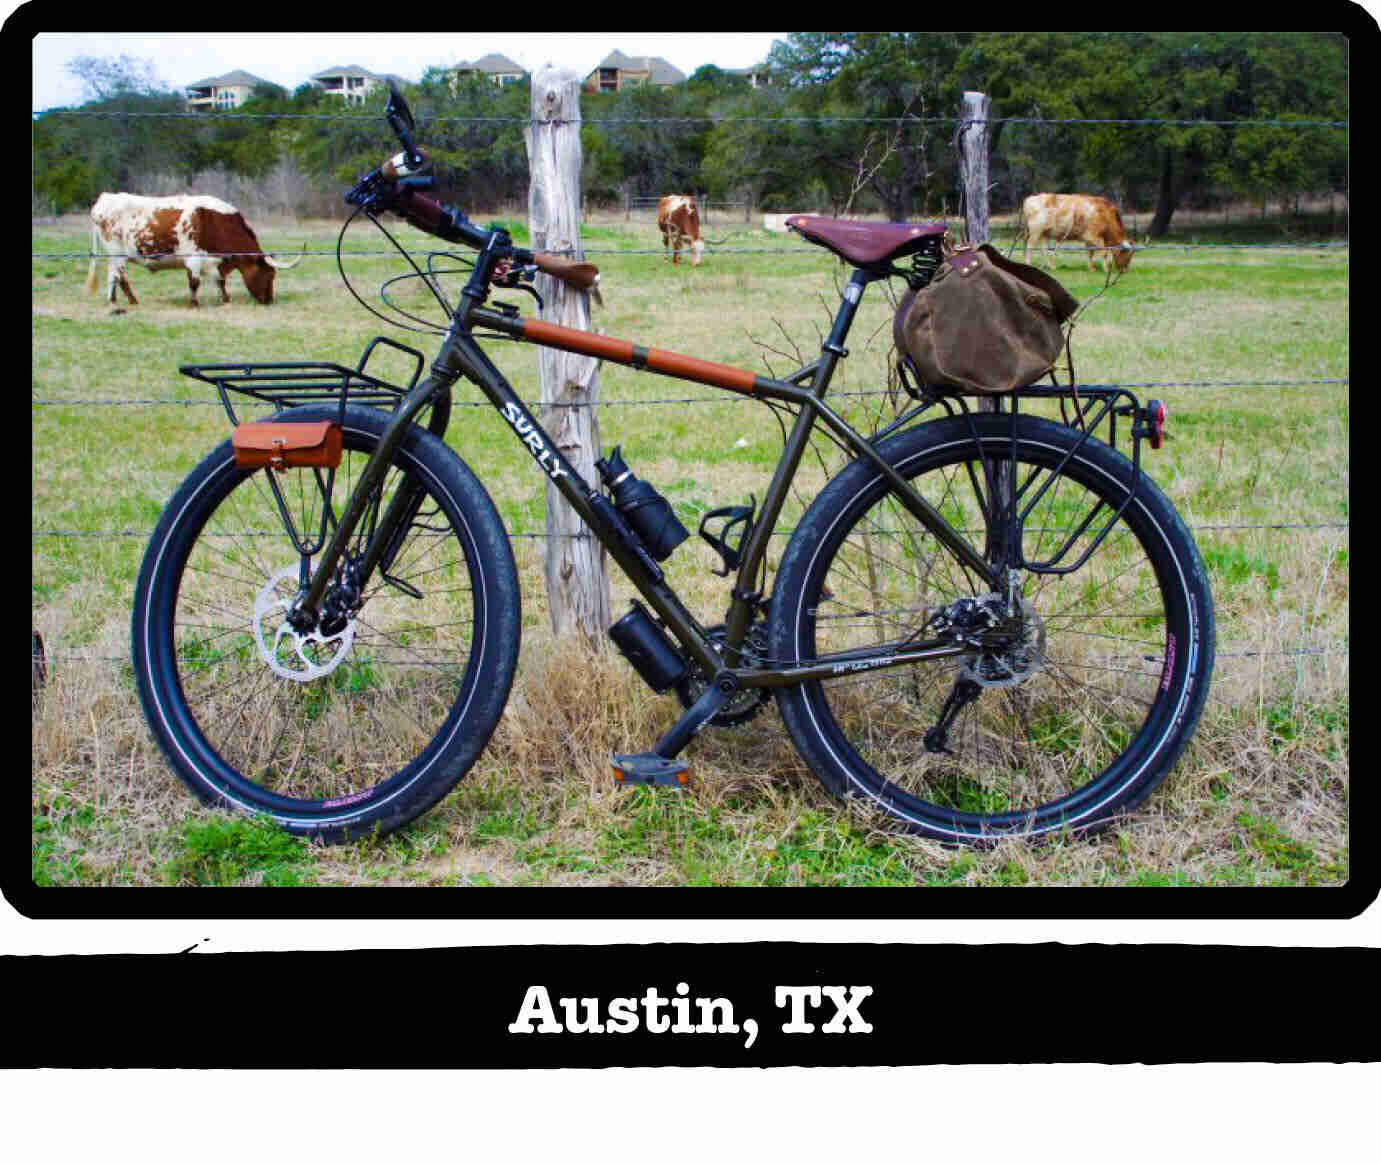 Left view of a Surly ECR bike, olive drab, against a fence with longhorns on a pasture - Austin, TX tag below image